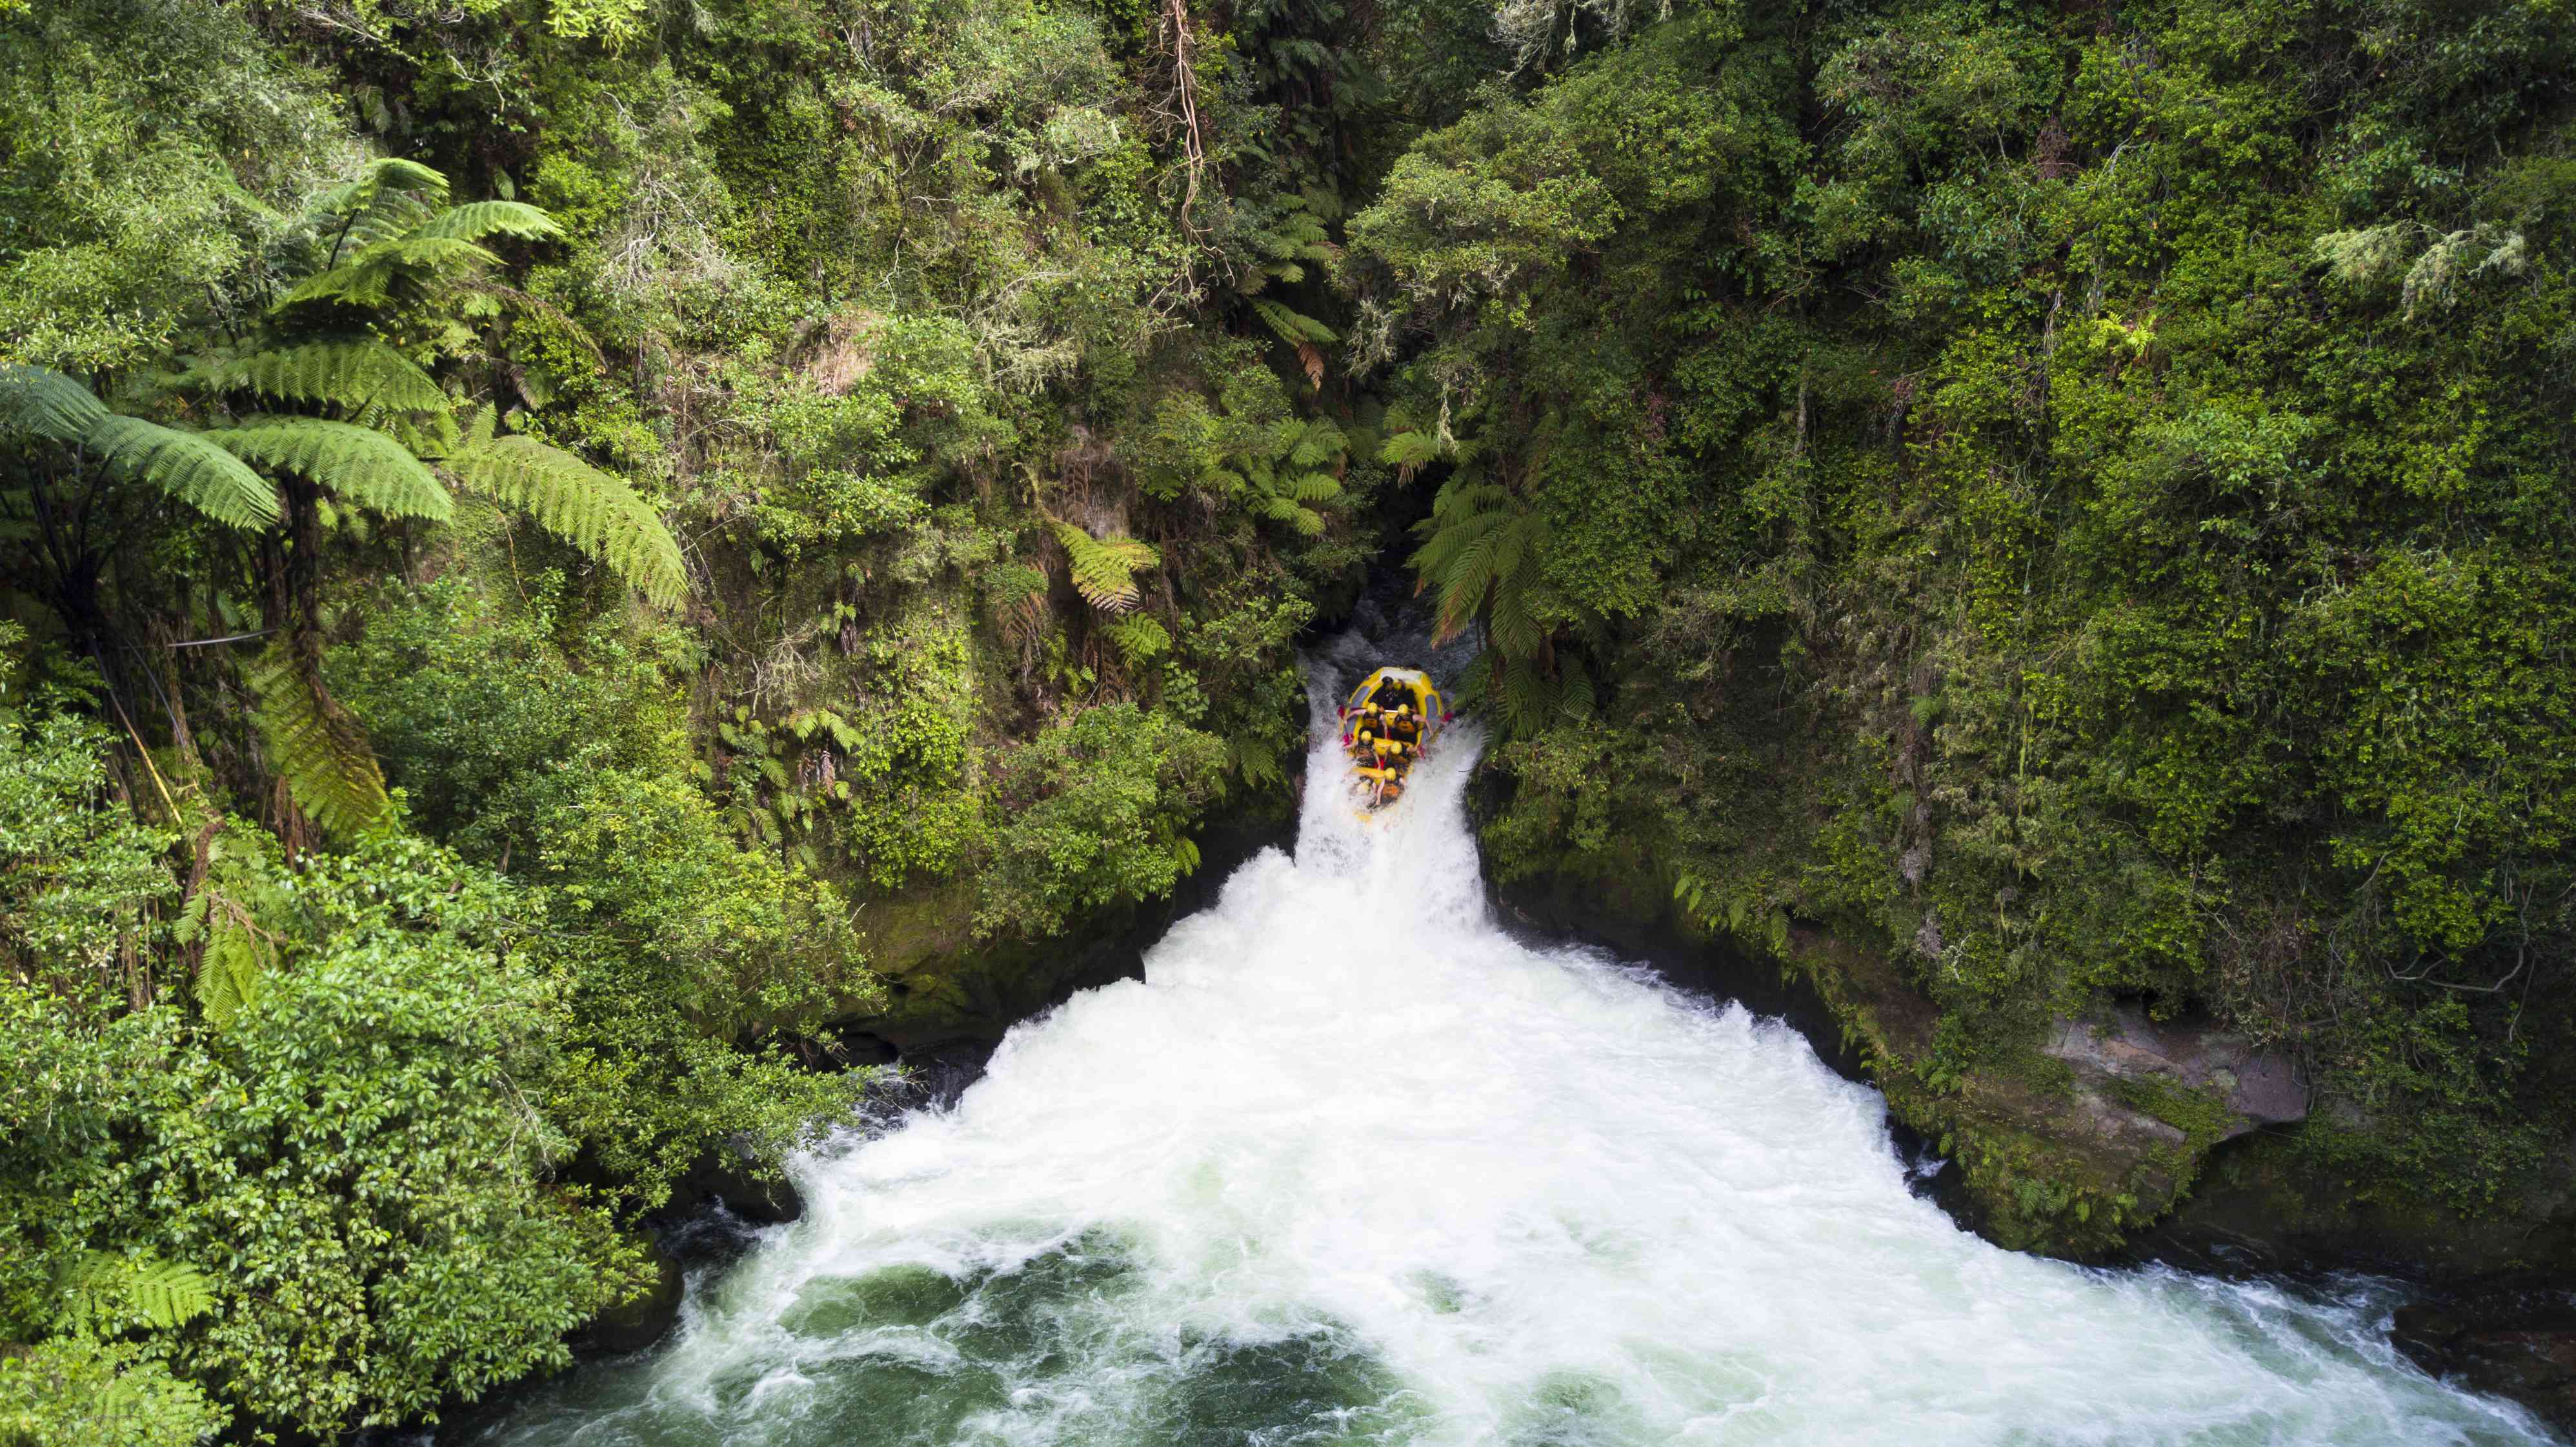 raft rushing down a waterfall surrounded by forested cliffs